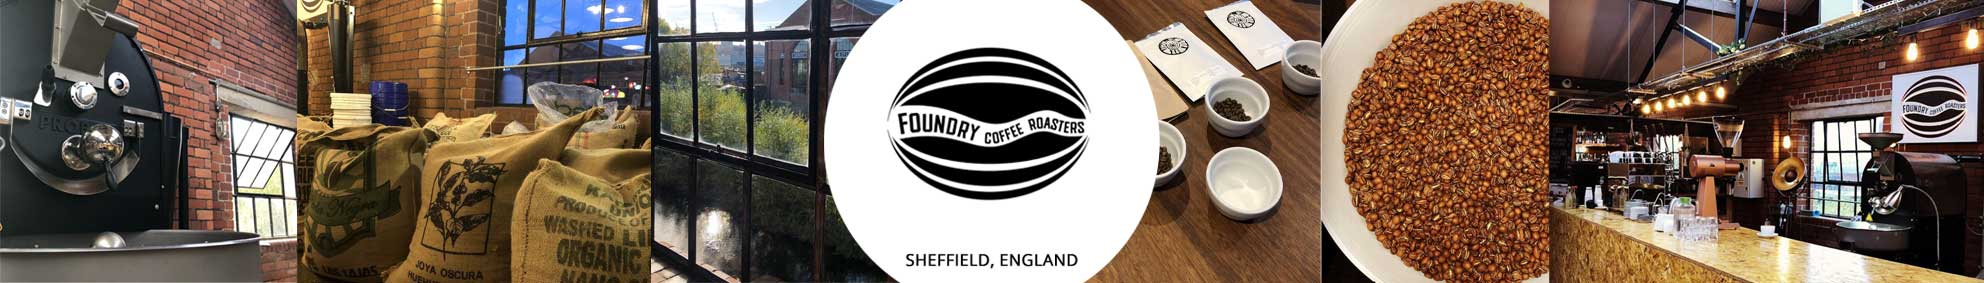 Foundry Coffee Roasters Speciality Coffee